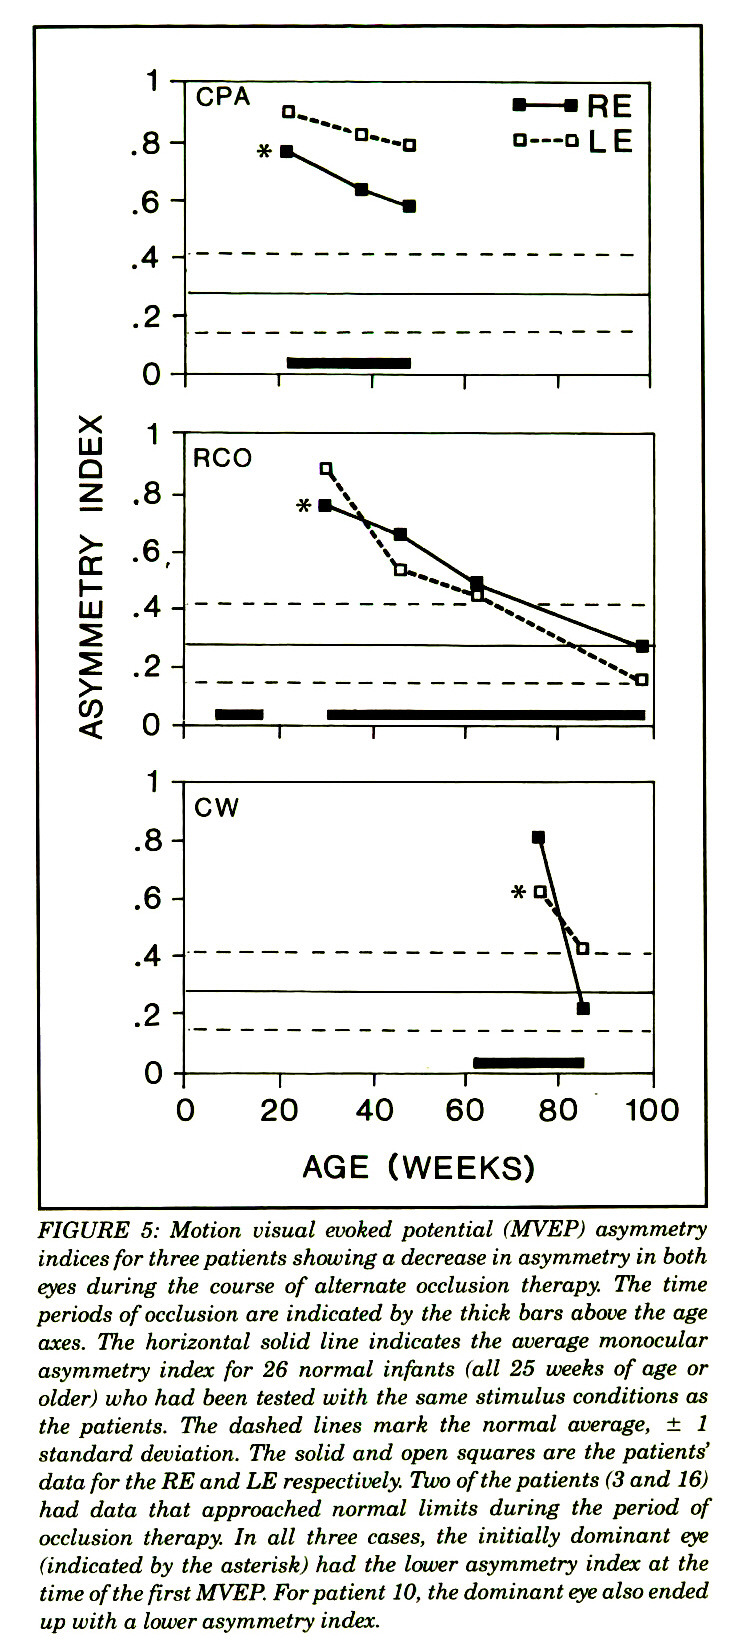 FIGURE 5: Motion visual evoked potential (MVEP) asymmetry indices for three patients showing a decrease in asymmetry in both eyes during the course of alternate occlusion therapy. The time periods of occlusion are indicated by the thick bars above the age axes. The horizontal solid line indicates the average monocular asymmetry index for 26 normal infants (all 25 weeks of age or older) who had been tested with the same stimulus conditions as the patients. The dashed lines mark the normal average, ± 1 standard deviation. The solid and open squares are the patients' data for the RE and LE respectively. Two of the patients (3 and 16) had data that approached normal limits during the period of occlusion therapy. In all three cases, the initially dominant eye (indicated by the asterisk) had the lower asymmetry index at the time of the first MVEP. For patient 10, the dominant eye also ended up with a lower asymmetry index.